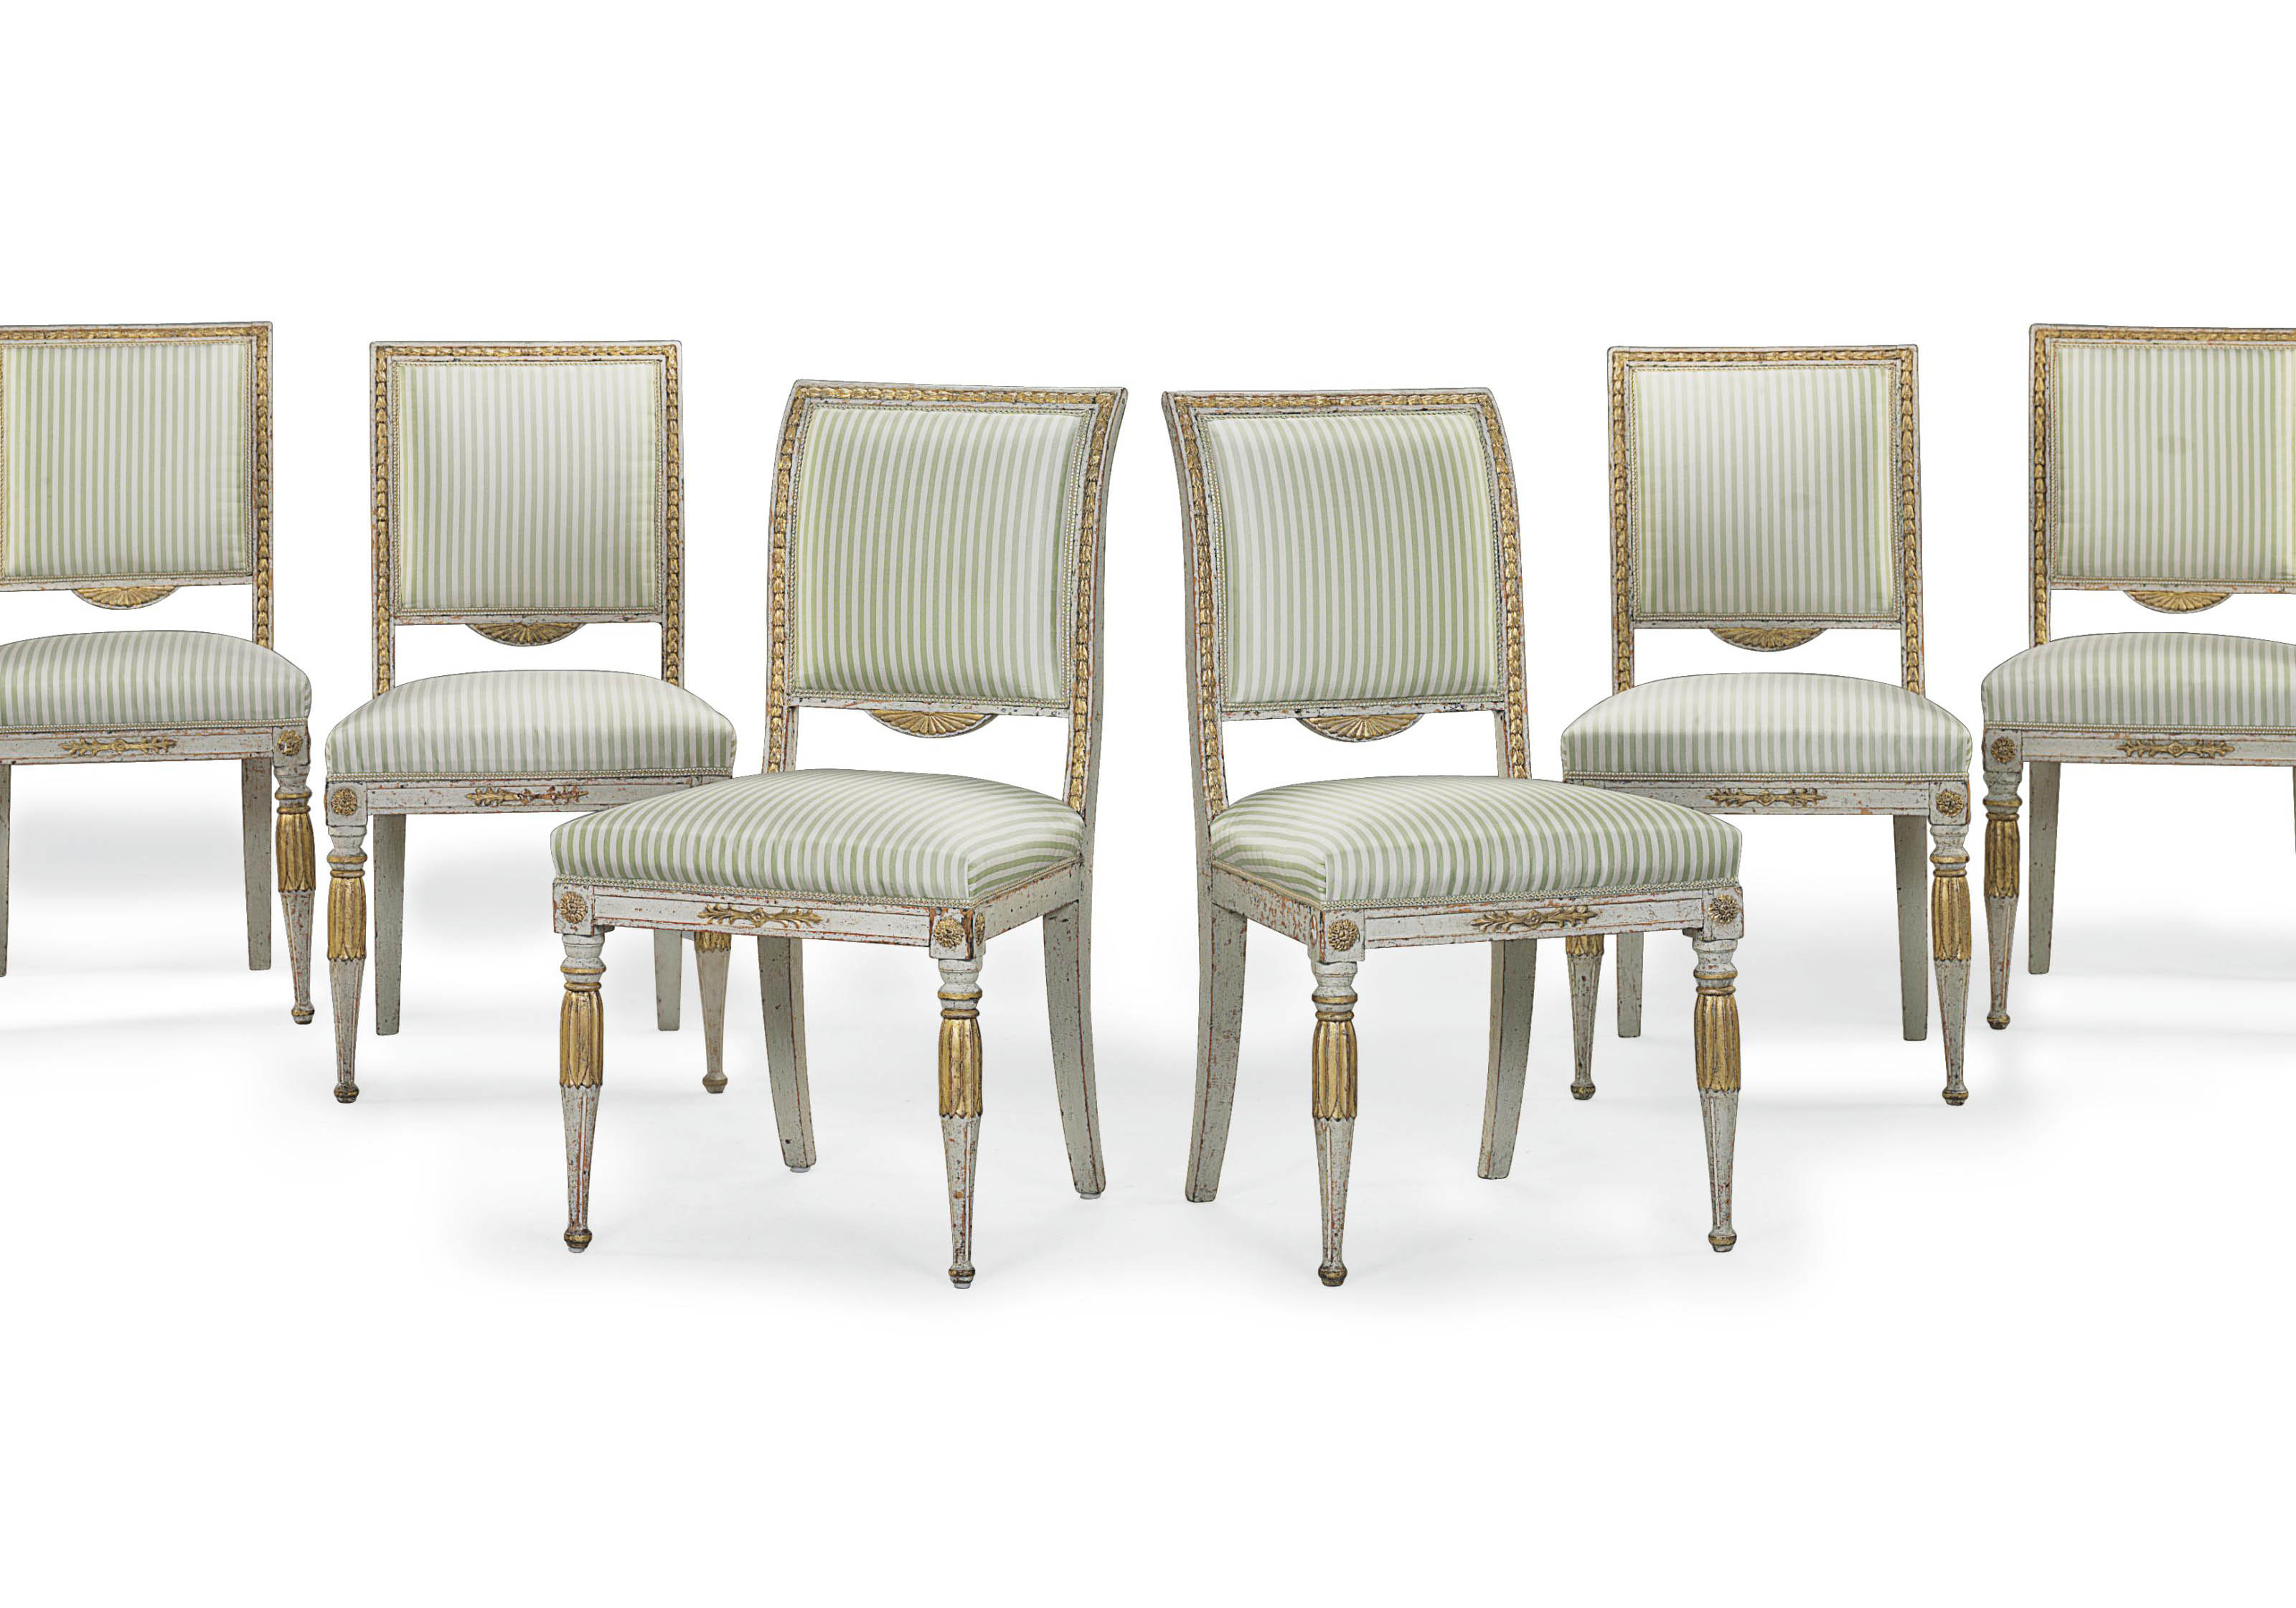 A SET OF SIX NORTH ITALIAN WHITE-PAINTED AND PARCEL-GILT SIDE CHAIRS